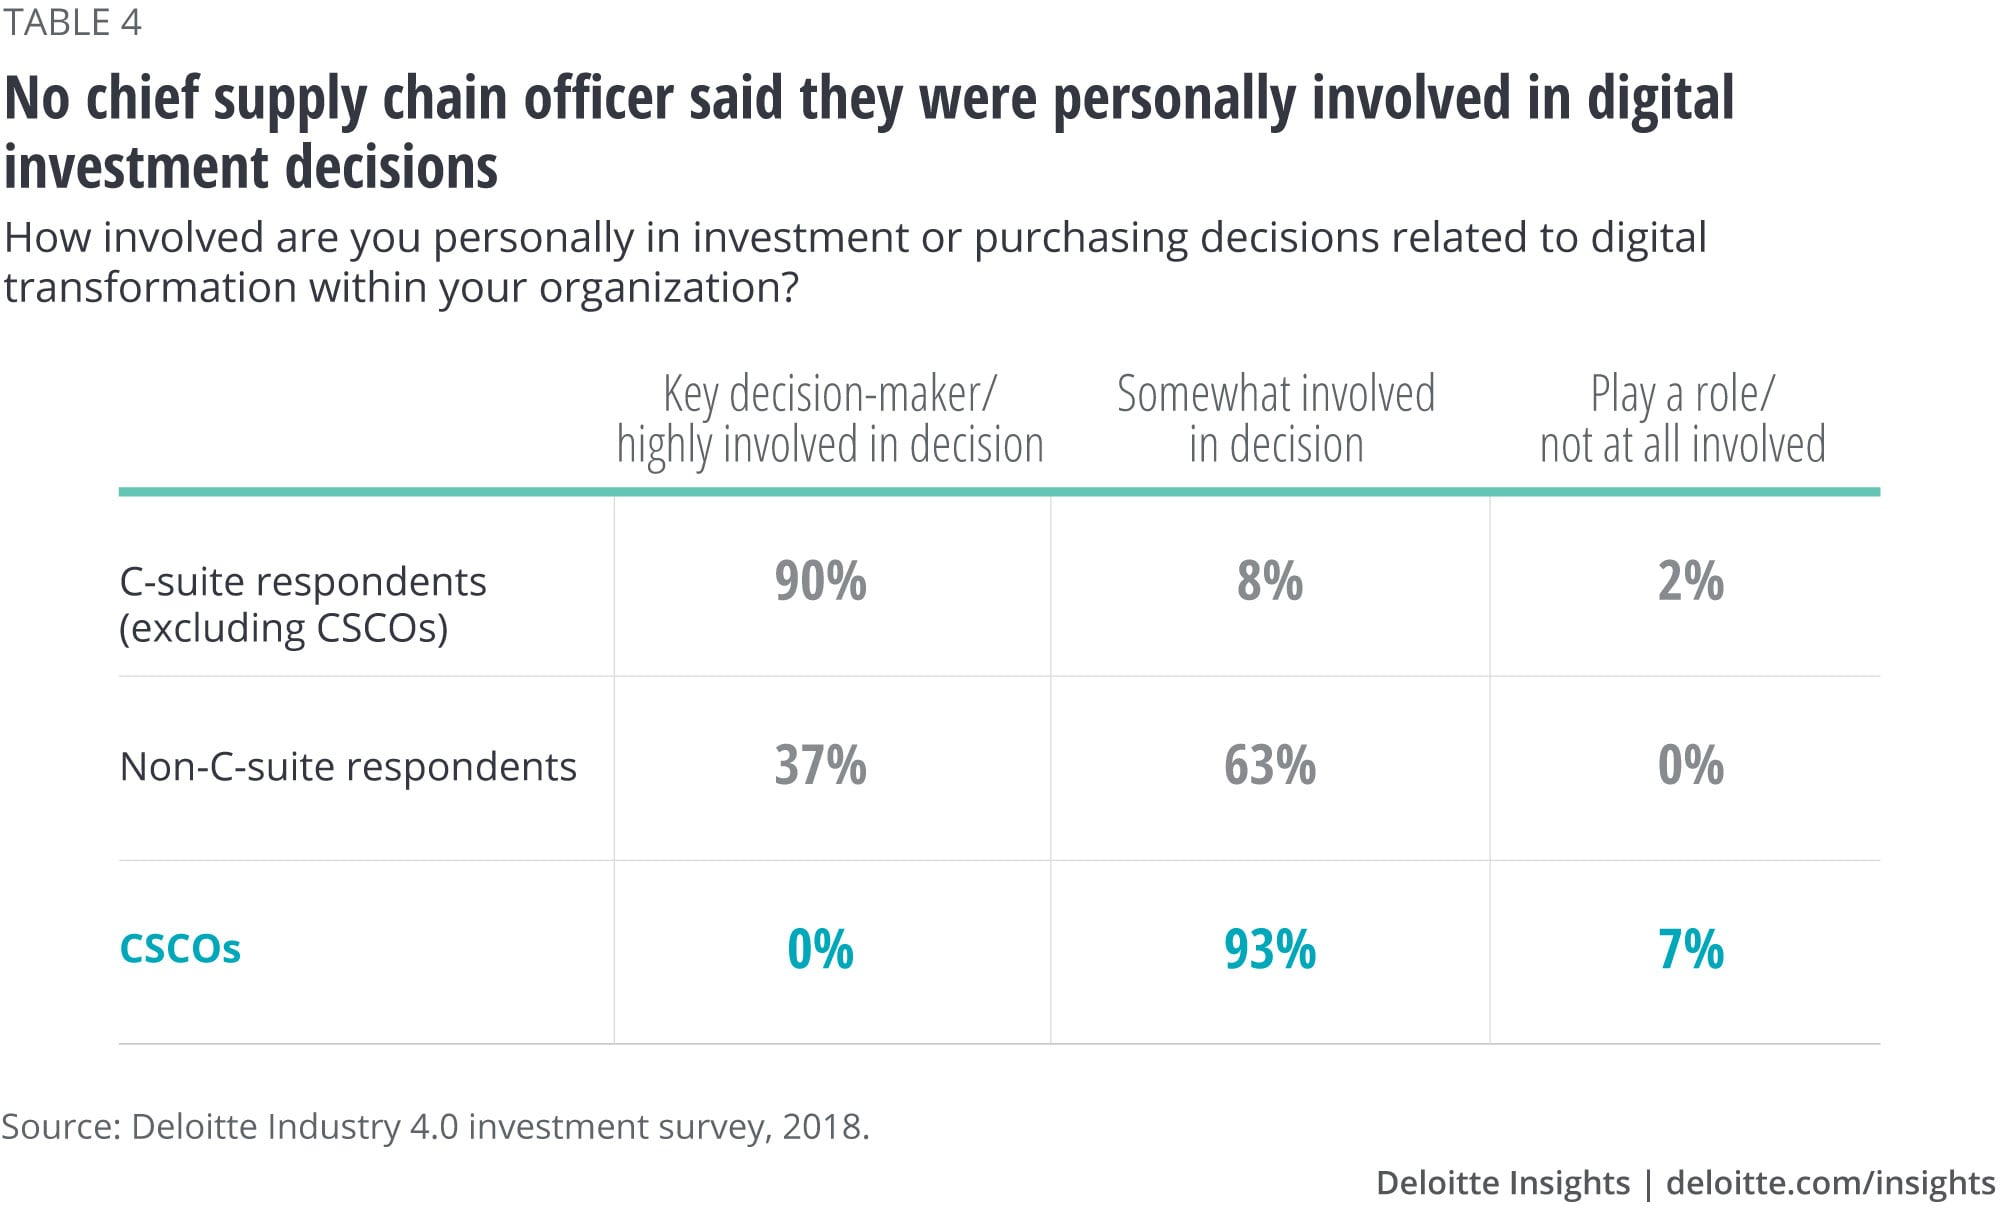 No chief supply chain officer said they were personally involved in digital investment decisions